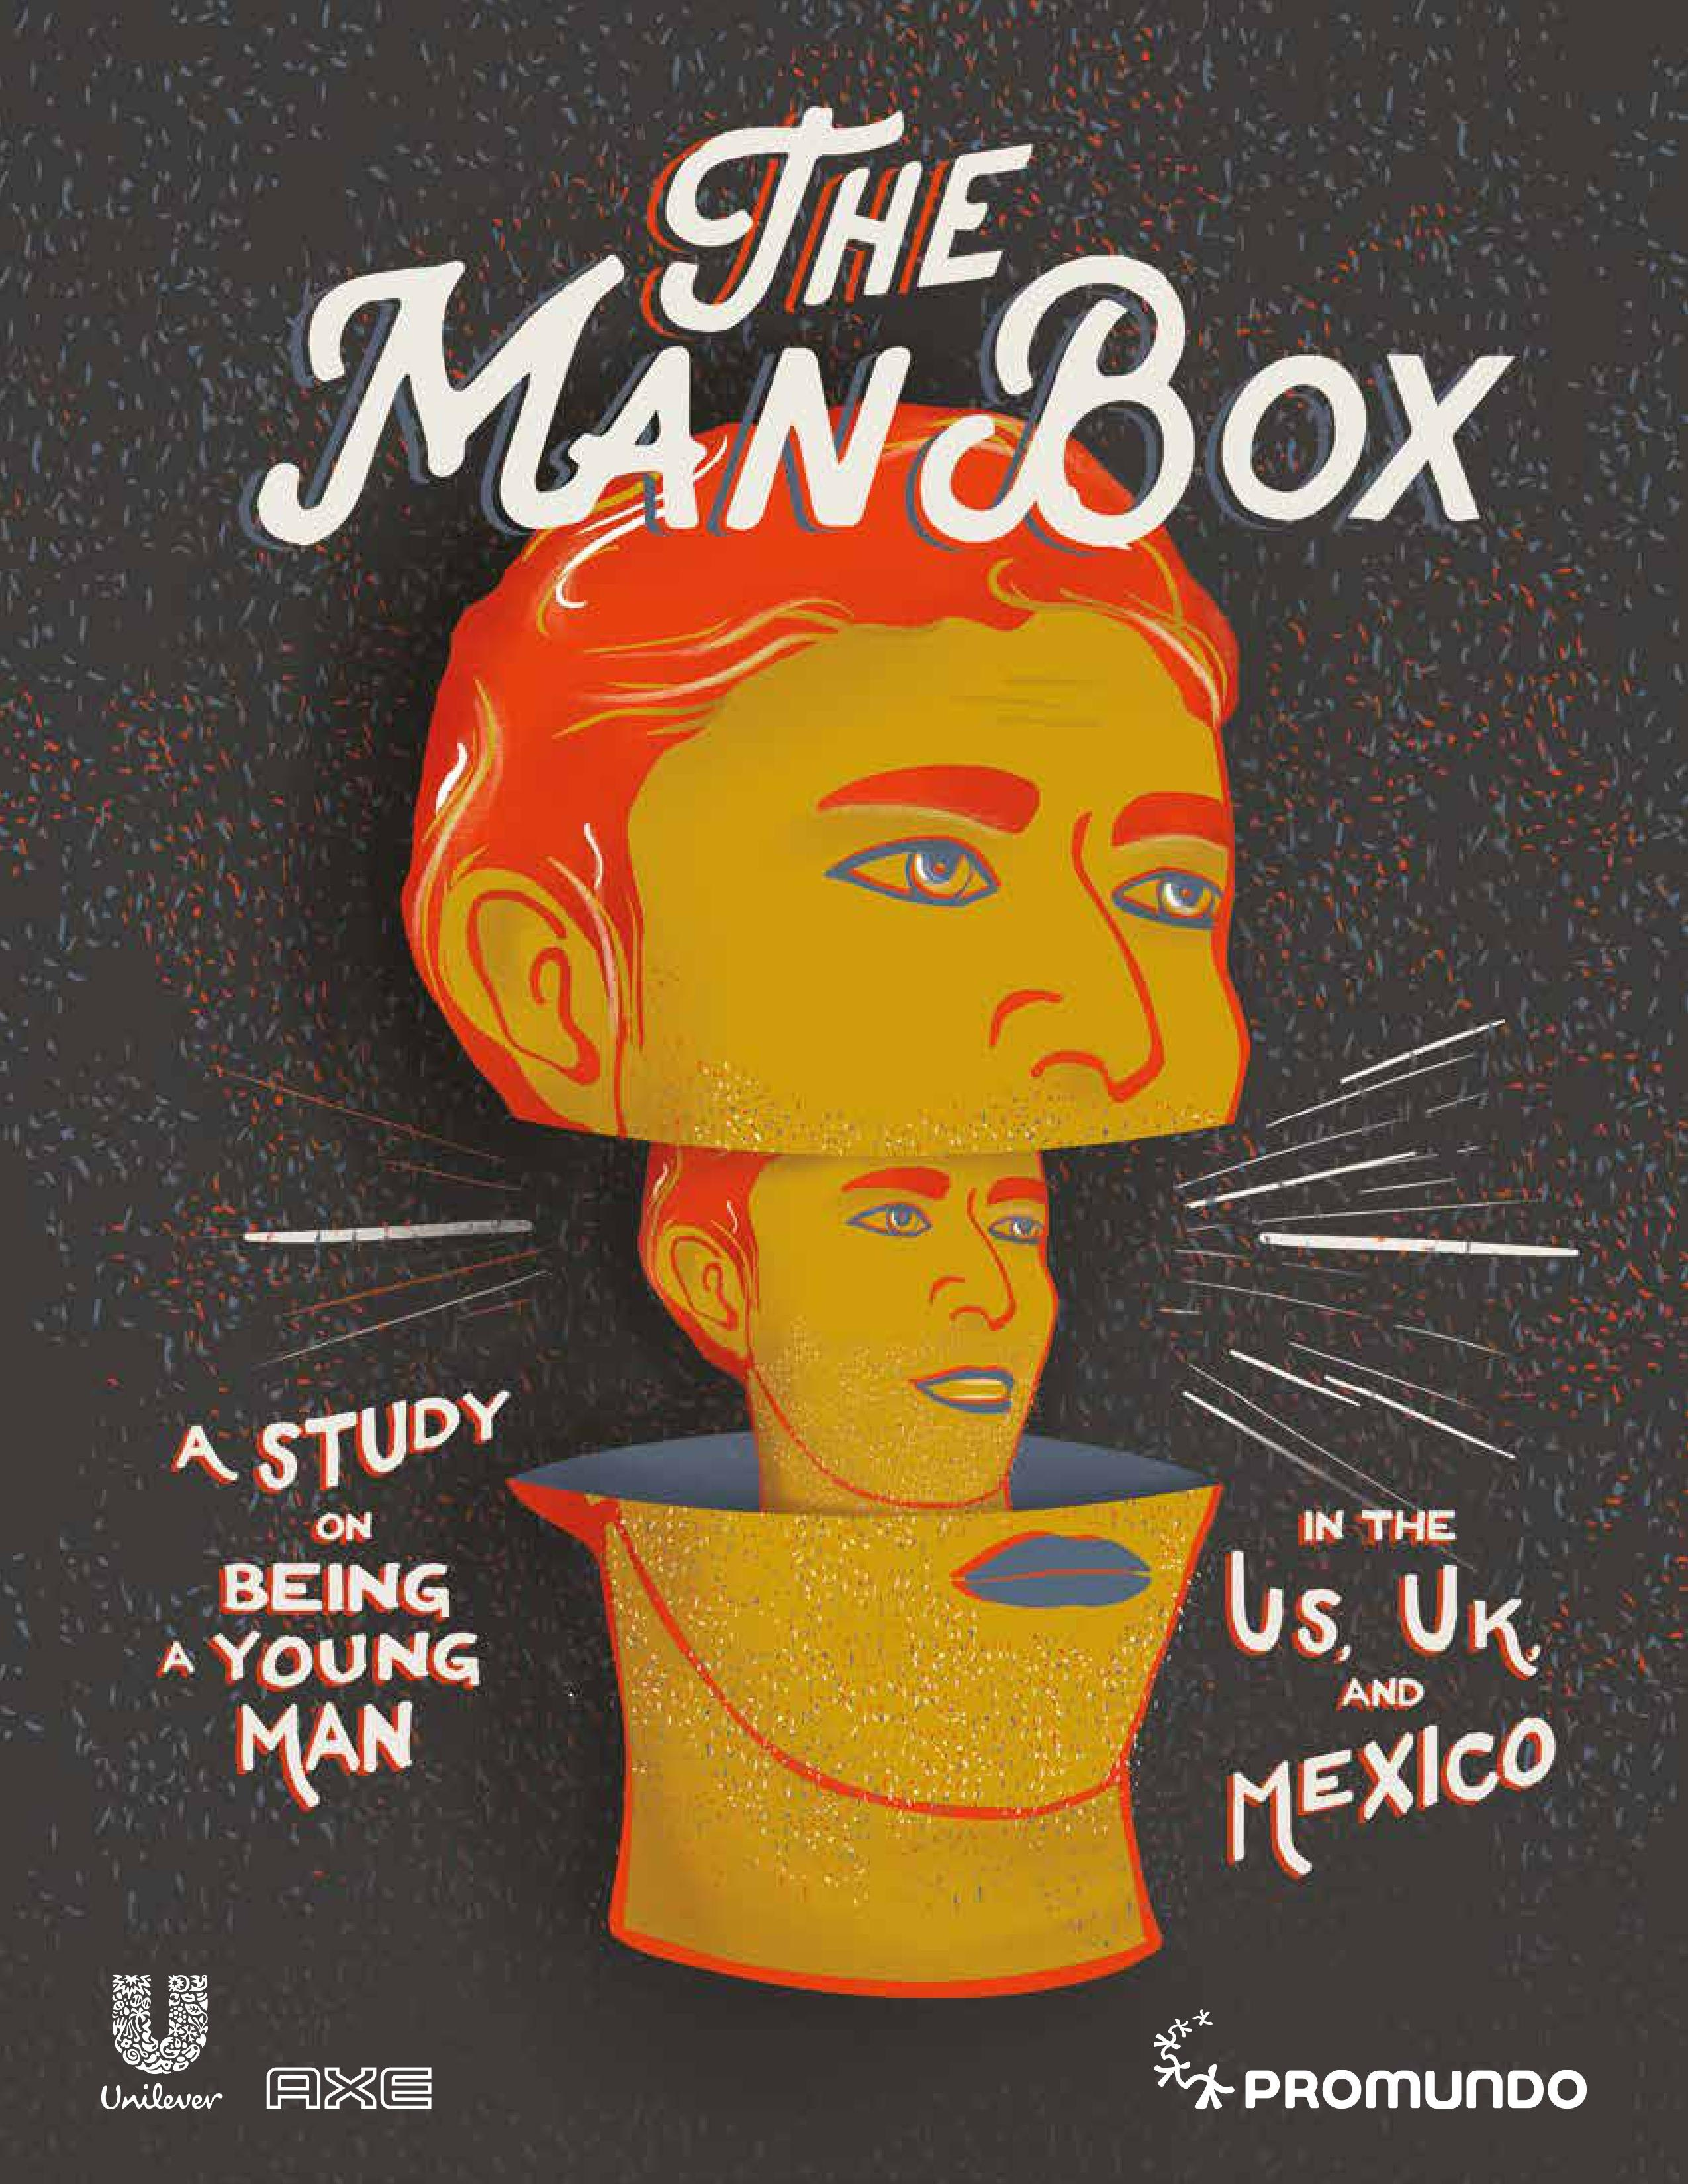 The Man Box: What Toxic Masculinities Mean and What Can be Done